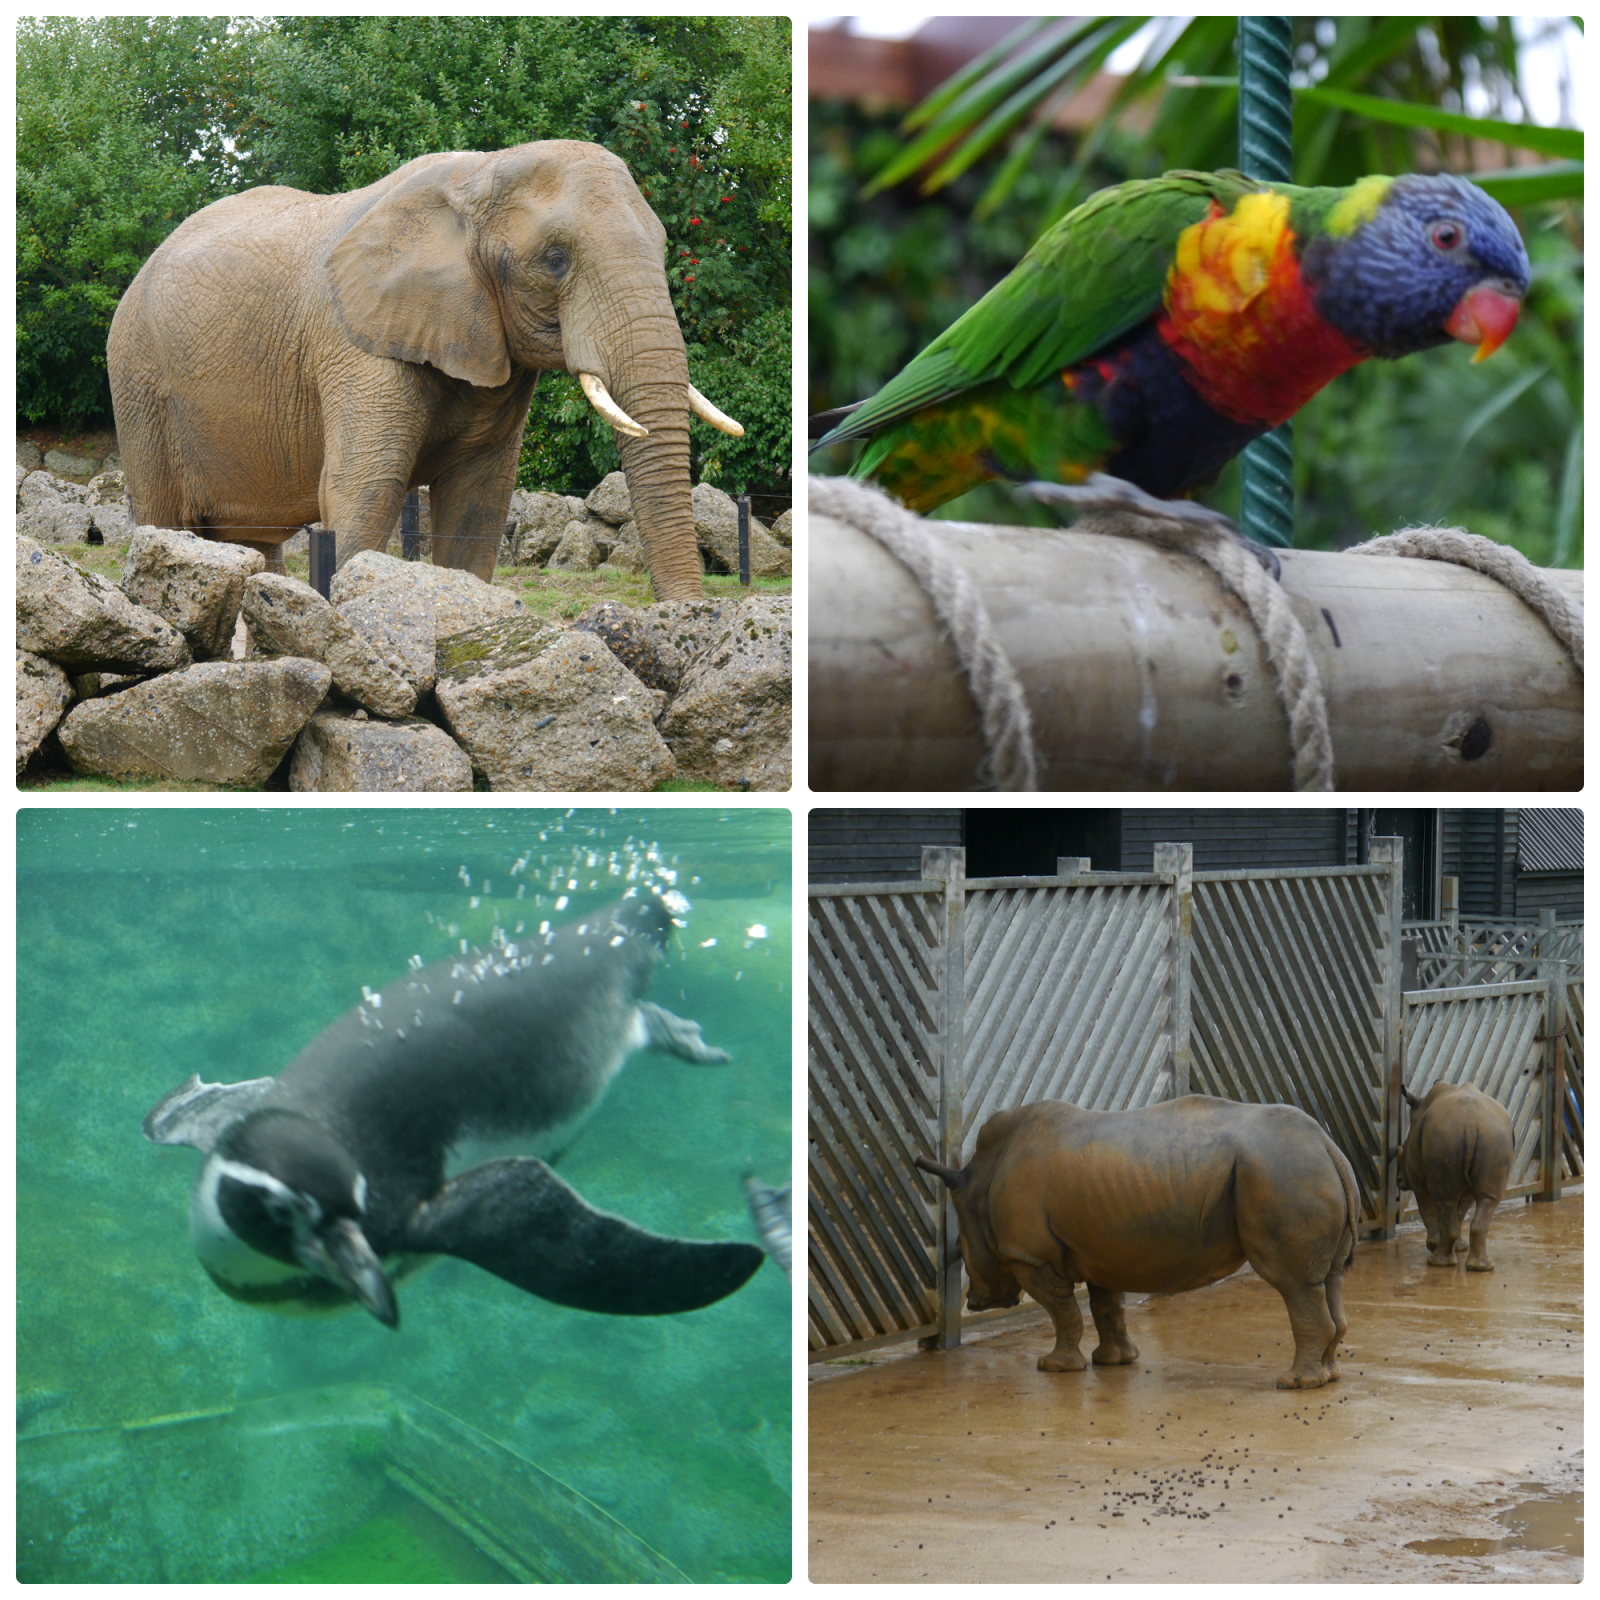 Discussion on this topic: How to Enjoy the Zoo, how-to-enjoy-the-zoo/